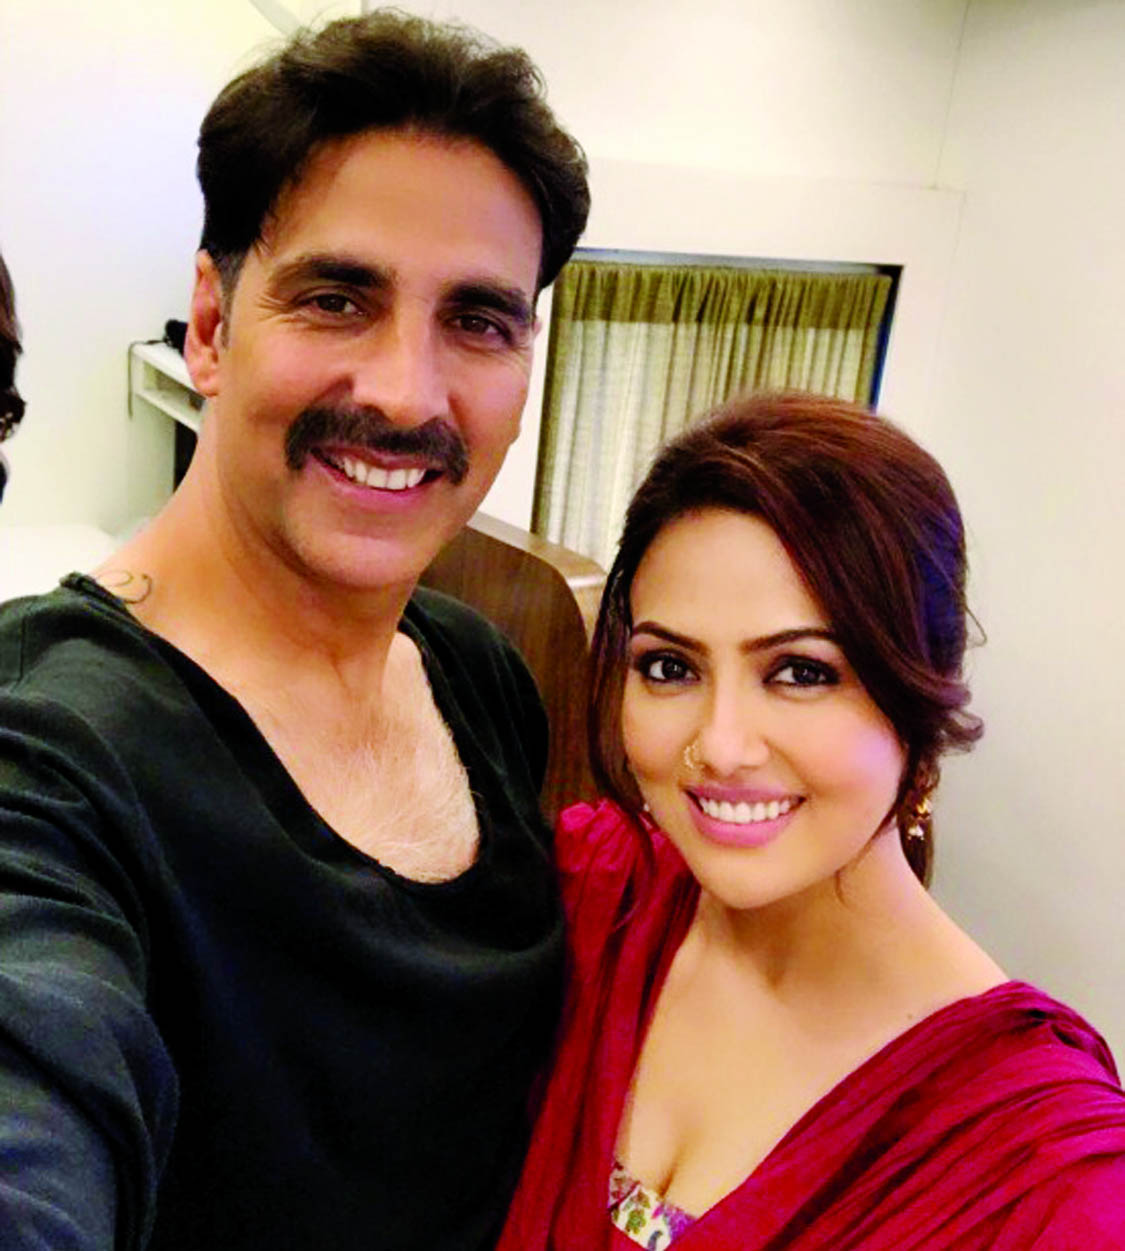 Sana Khaan shares a selfie with Toilet Ek Prem Katha co-star Akshay Kumar